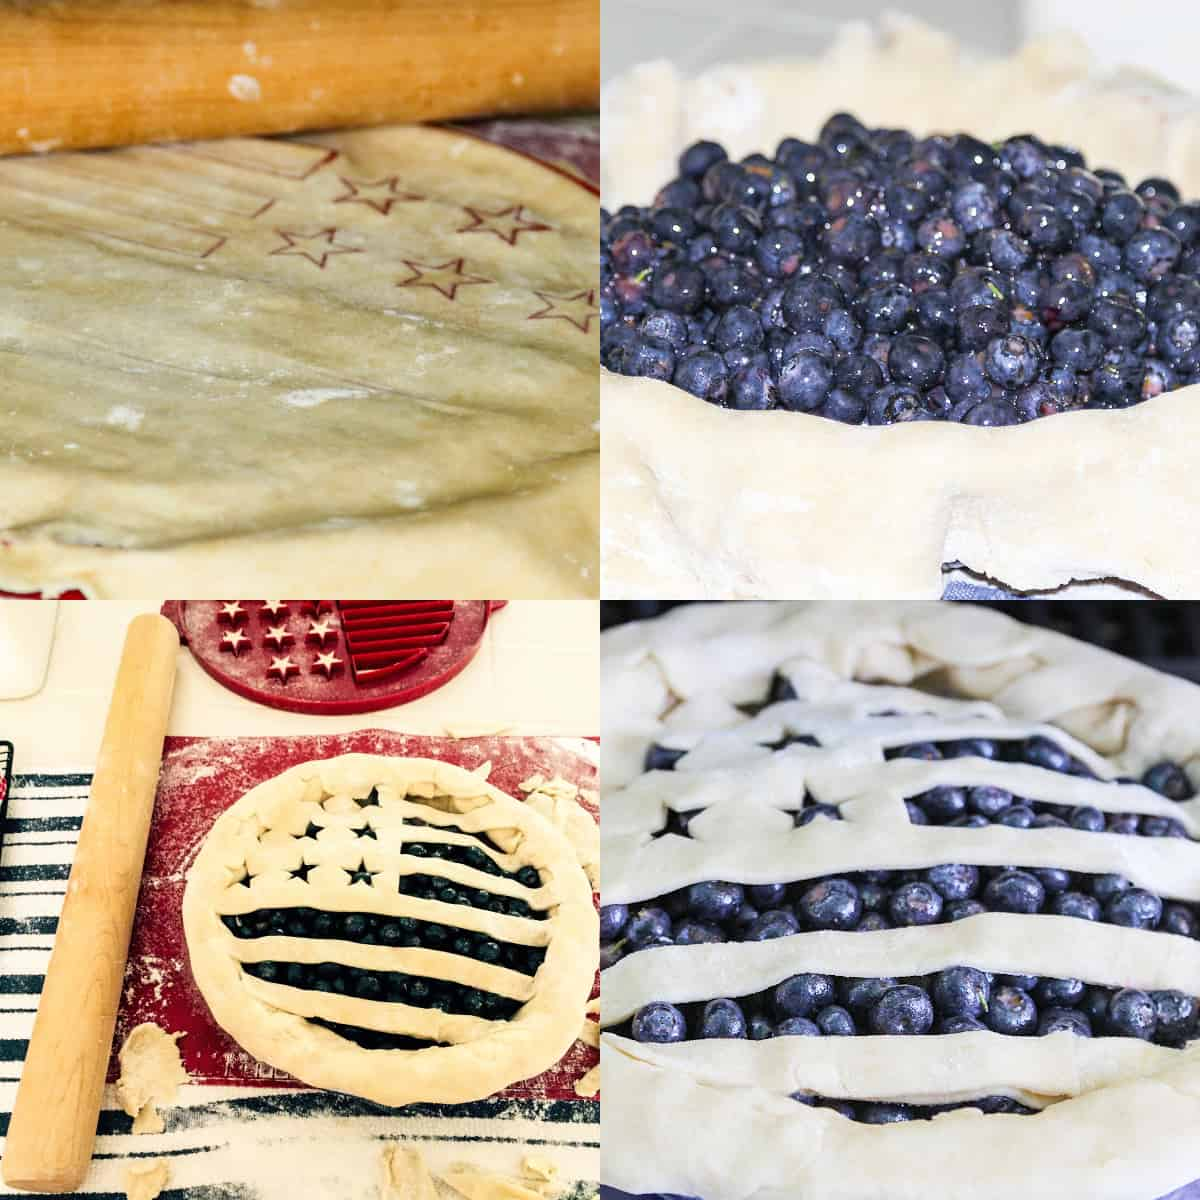 A graphic showing steps 5-8 of baking a blueberry pie with an American flag crust.